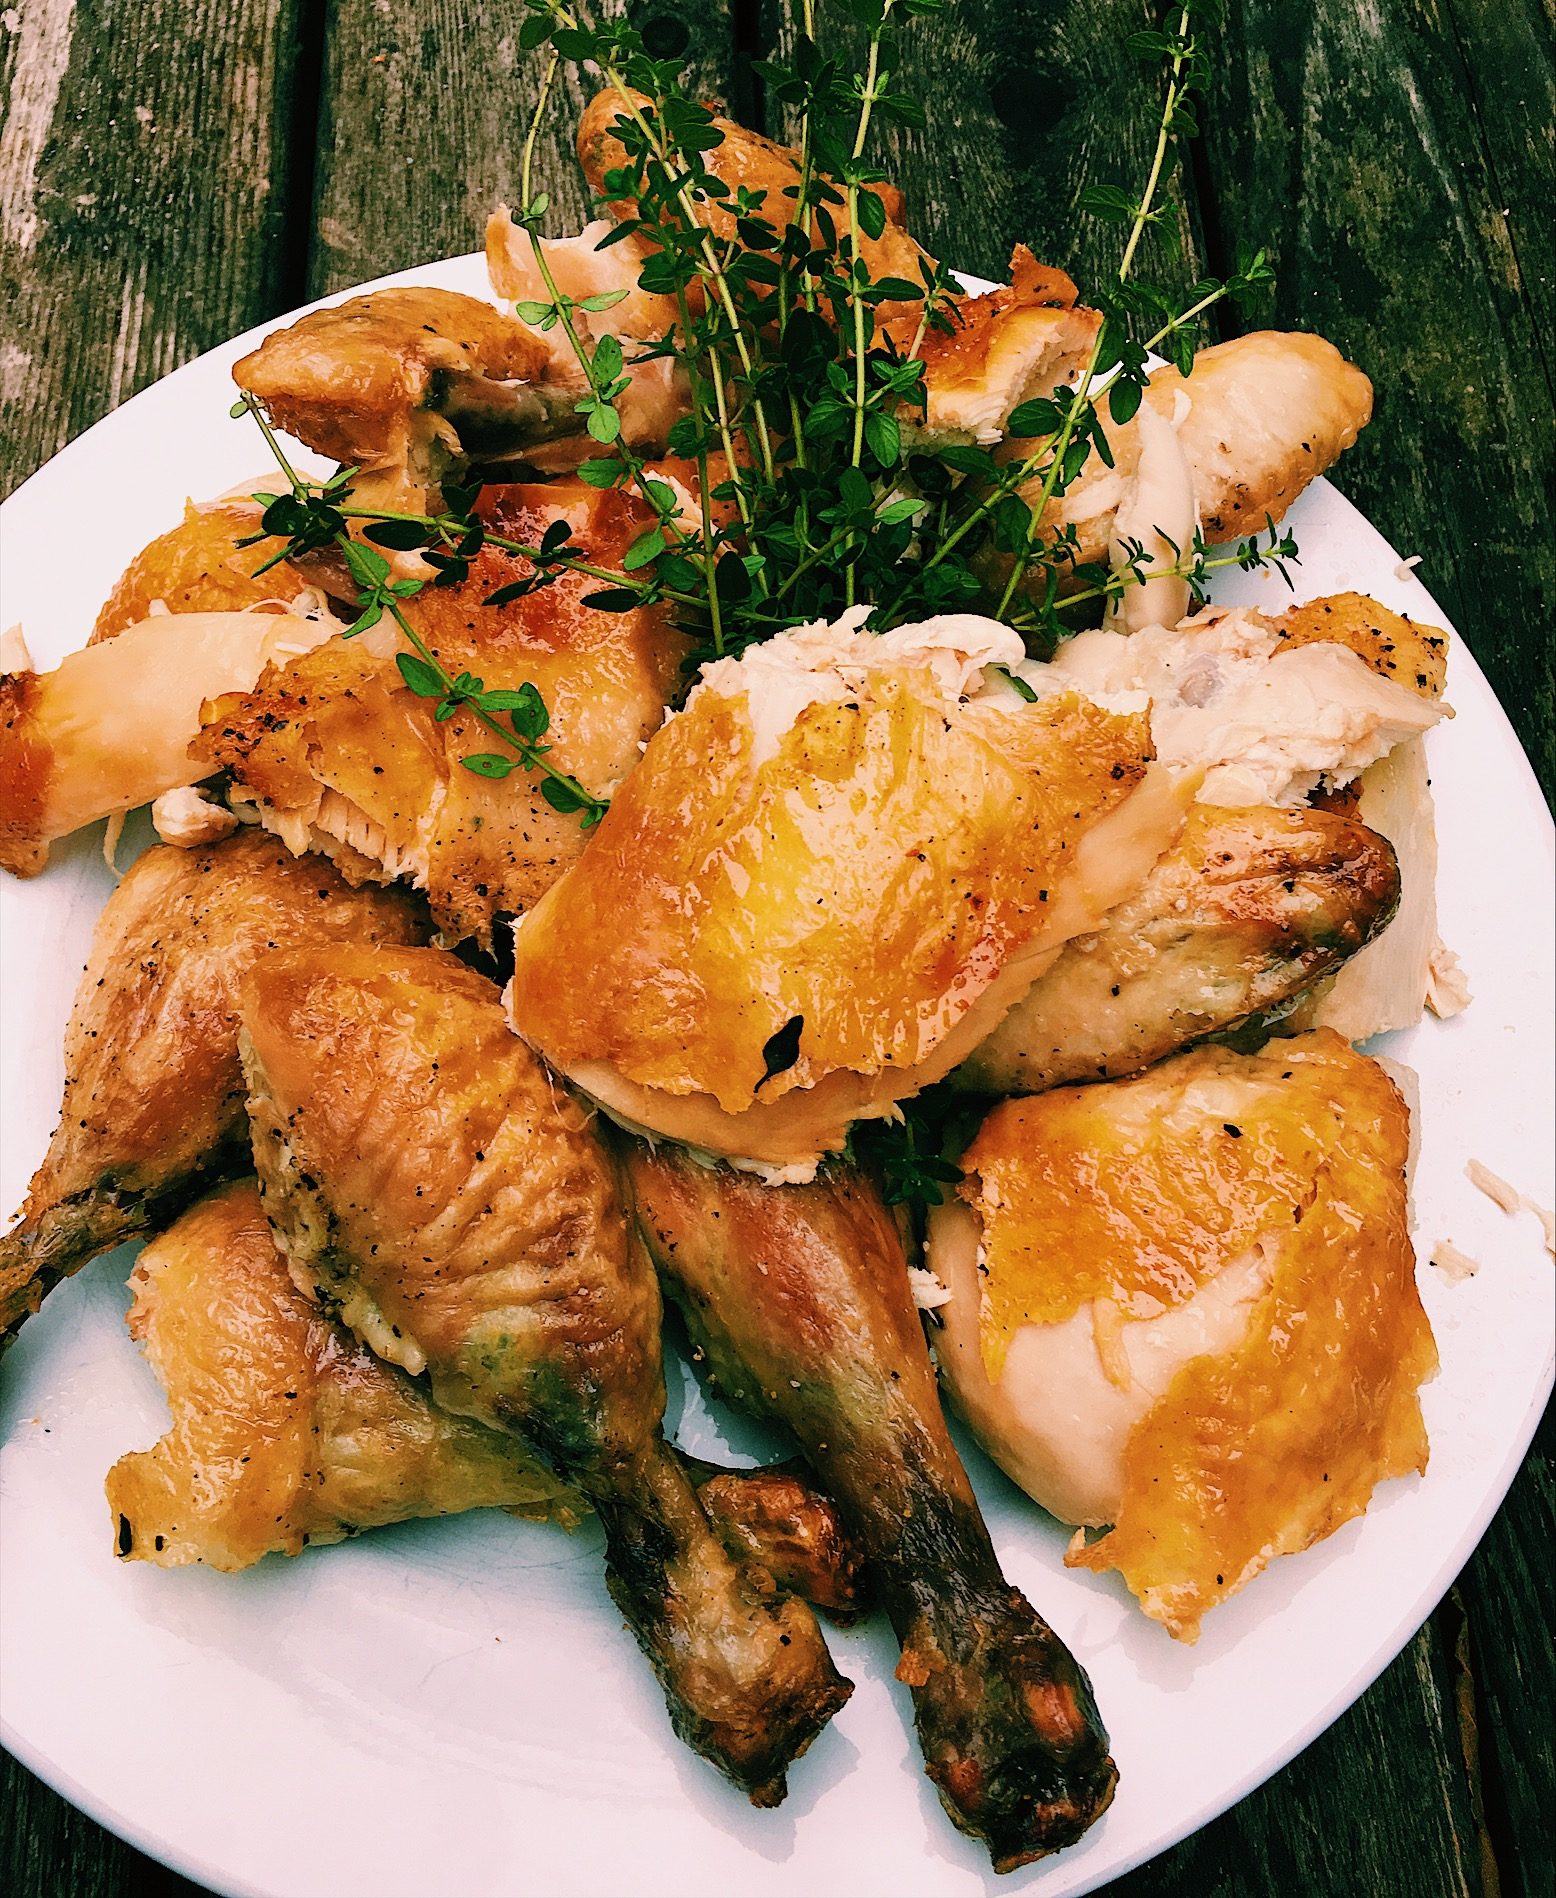 Perfectly Roasted Whole Chickens with Lemon and Thyme